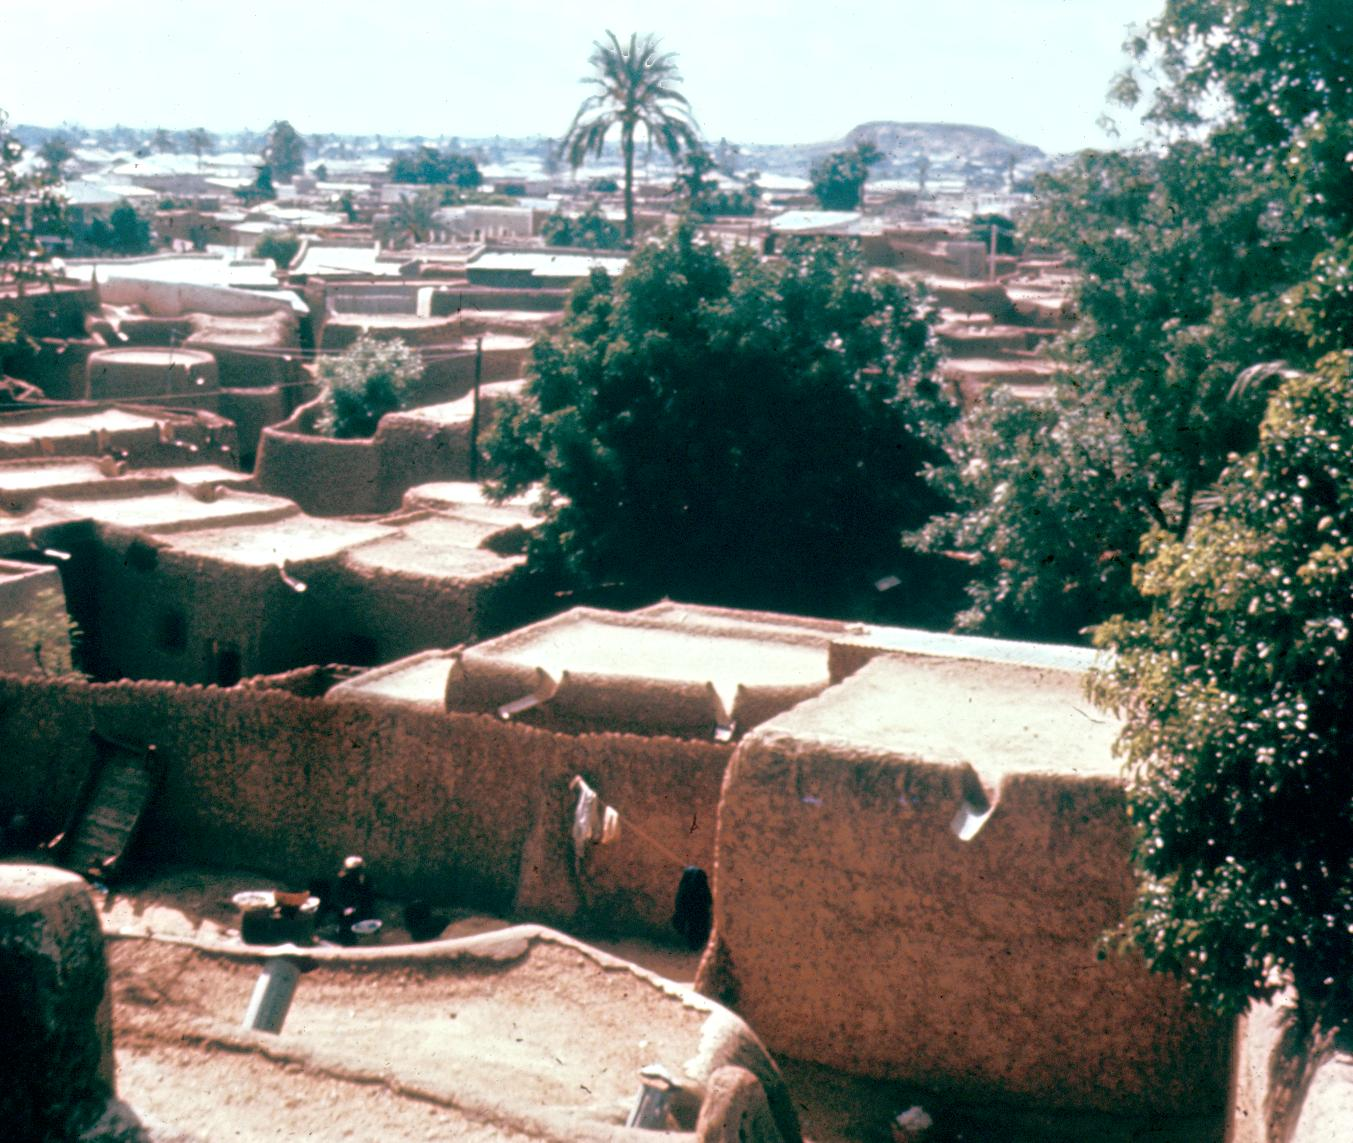 Rooftops of Kano